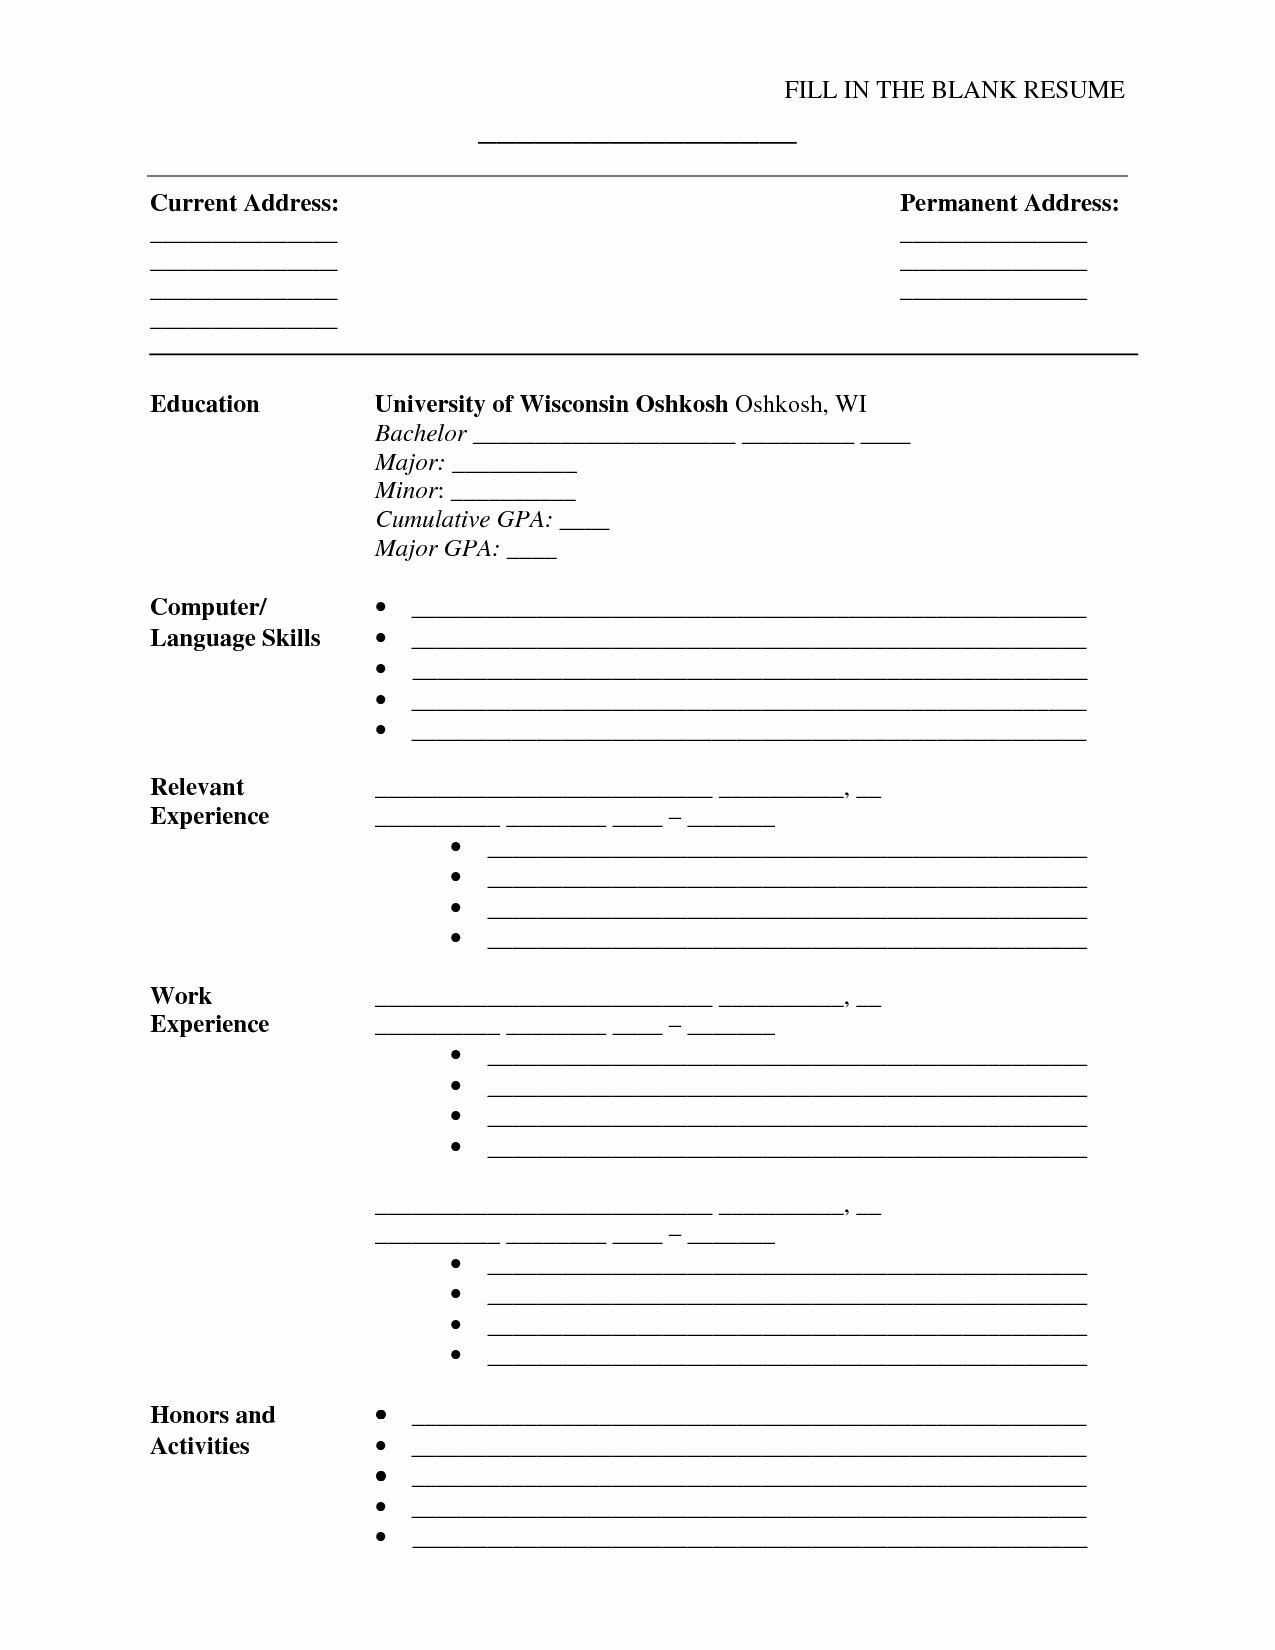 Fill In Resume Template Free Lovely Fill In the Blank Resume Pdf Umecareer